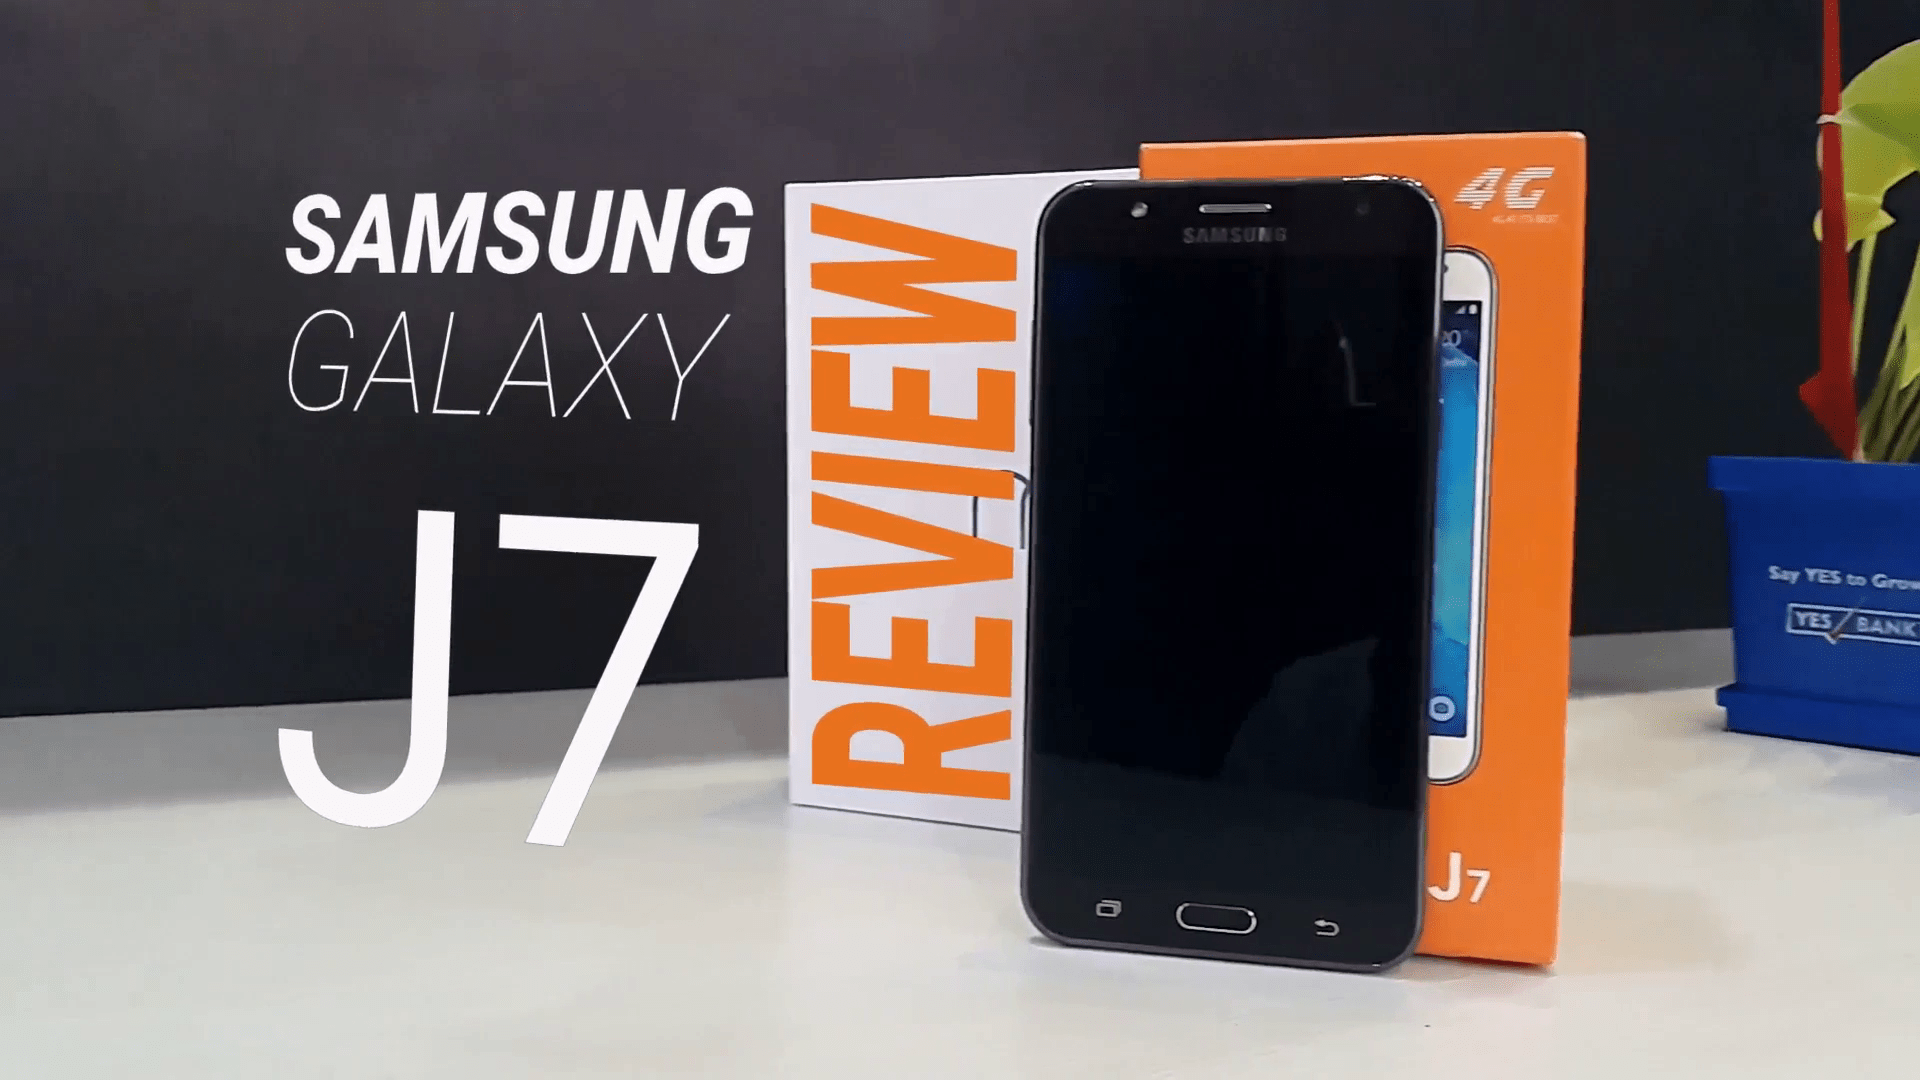 Samsung Galaxy J7 Review : Design, Benchmarking, Camera